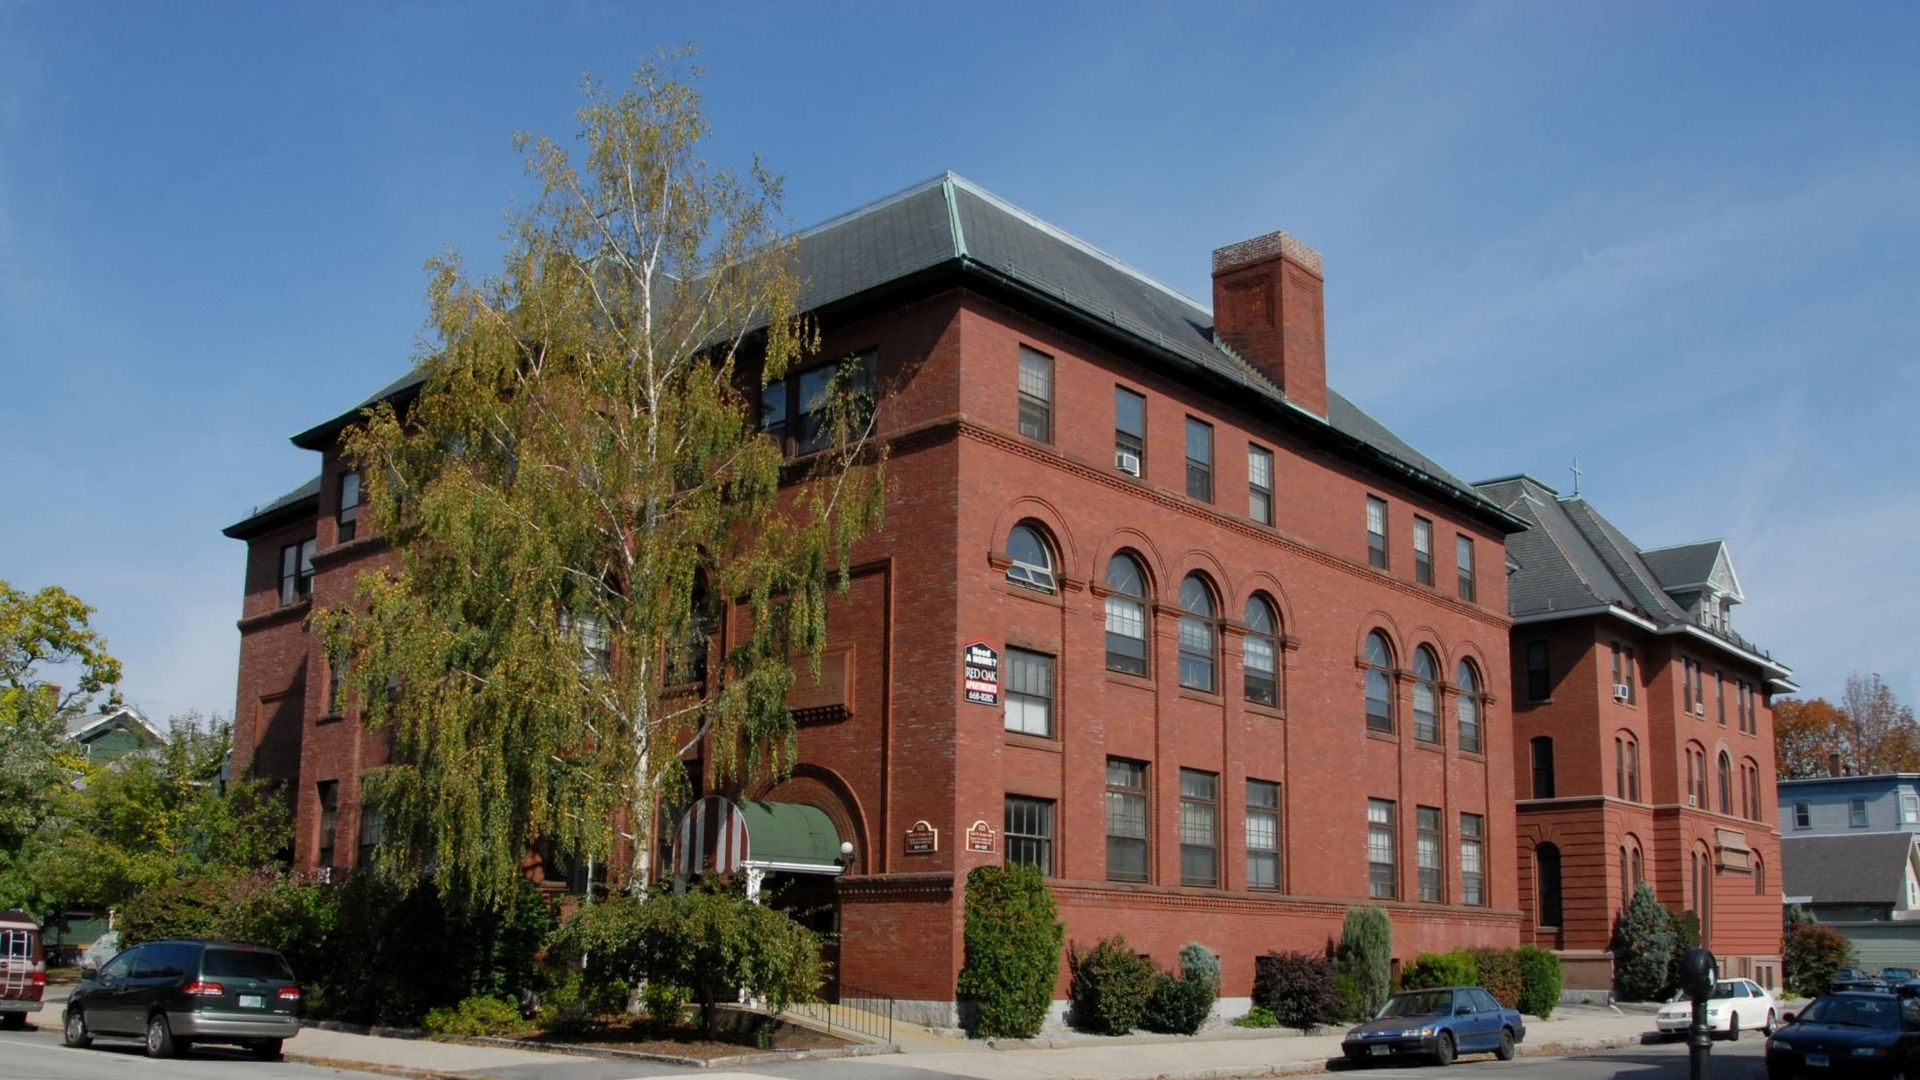 1-bed apartment at 521 Pine Street, Manchester, NH 03104 ...